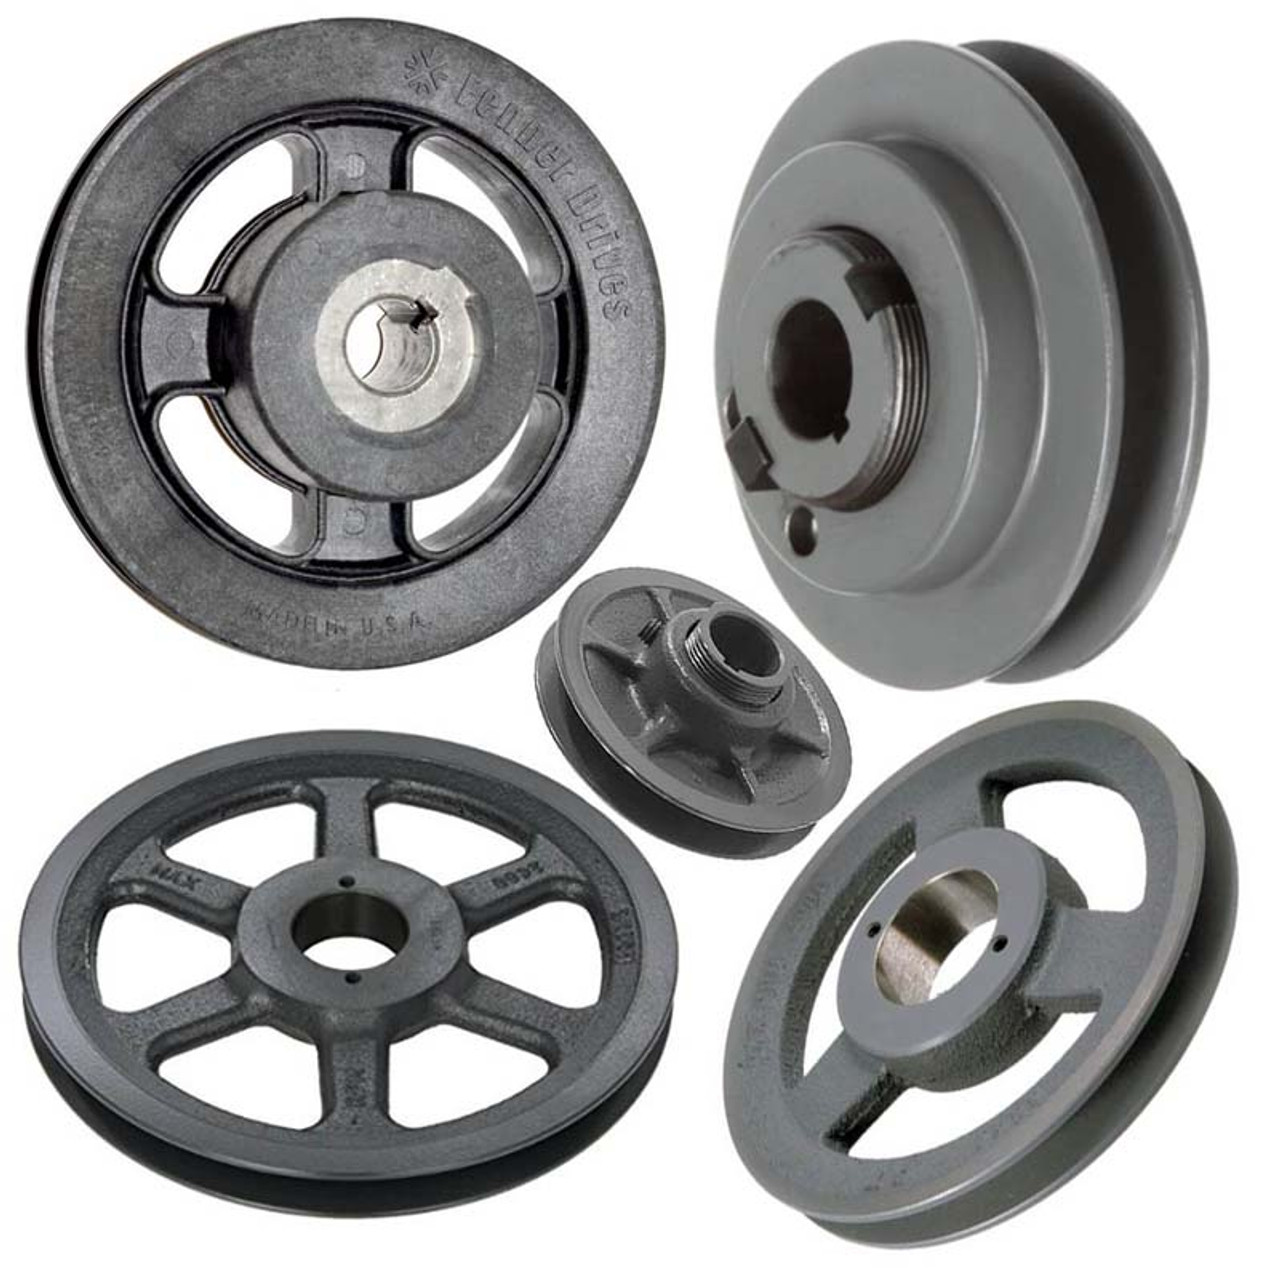 Lovejoy 68514443304 1902 Pulley Cast Iron 5//8 Bore 2.5 OAL 8.25 OD 5//8 Bore 2.5 OAL 8.25 OD LOV   1902 5//8 PULLEY